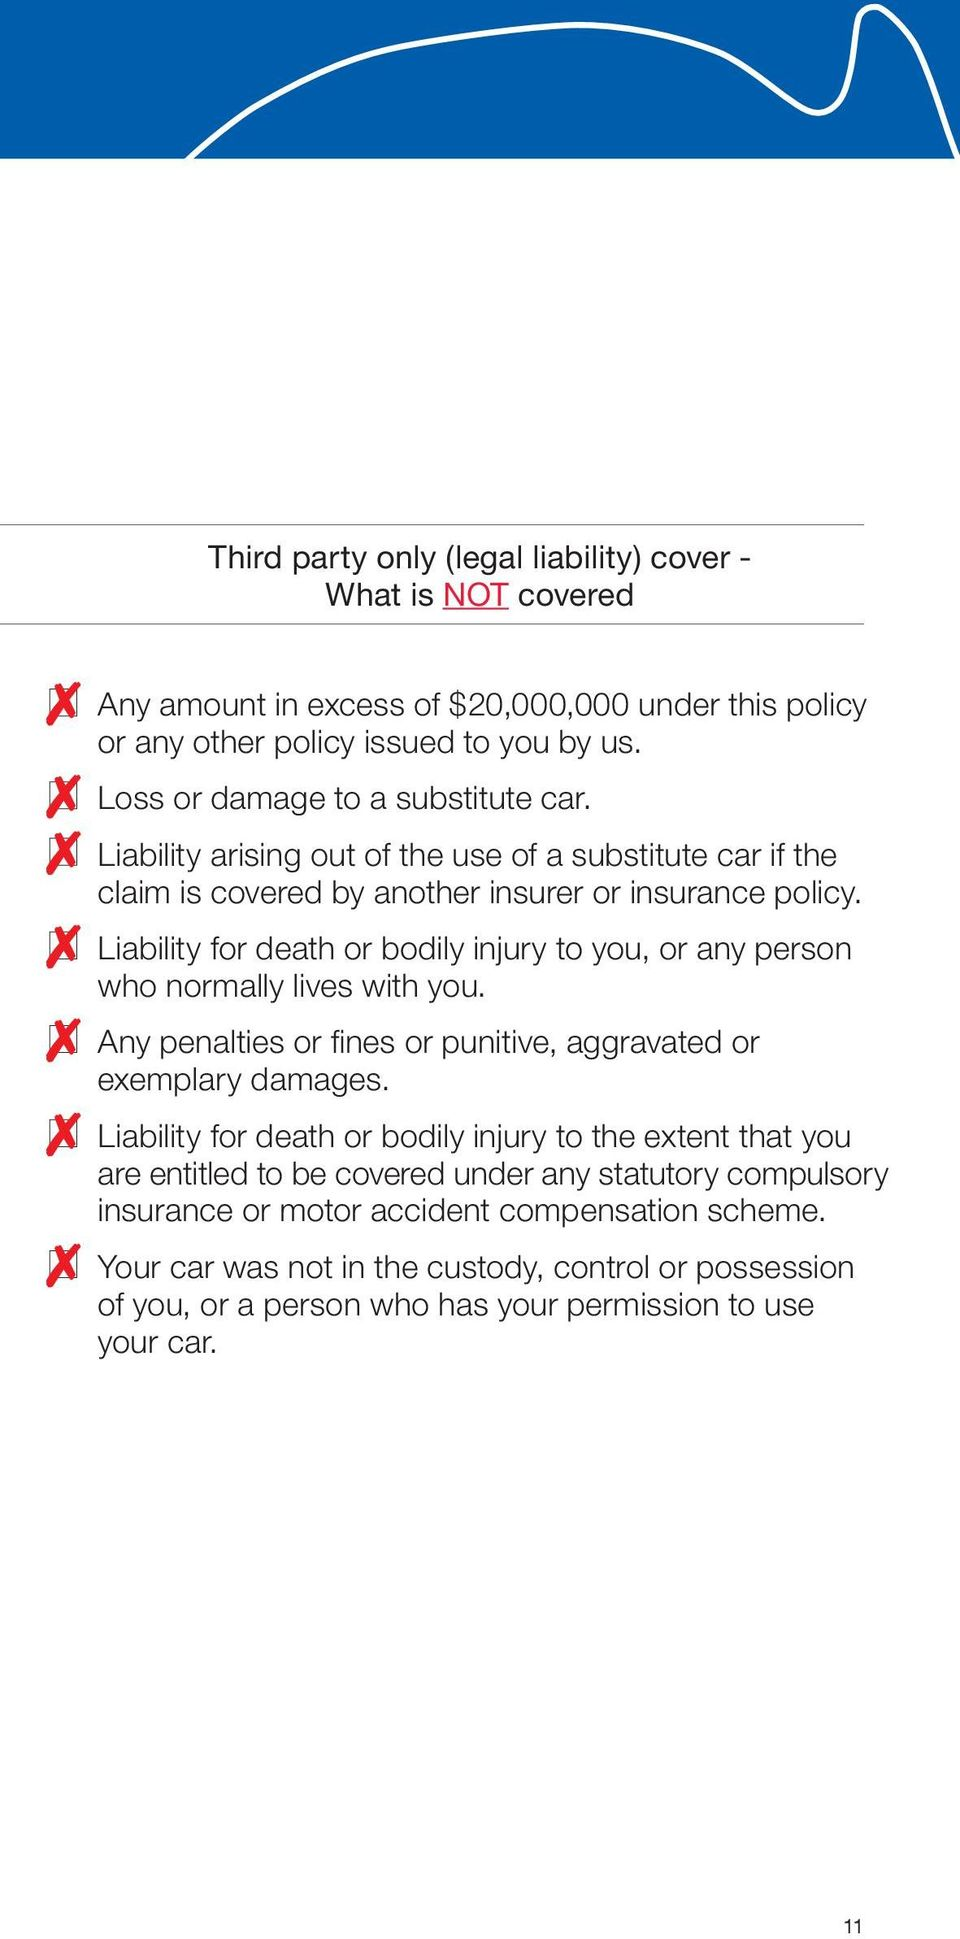 Liability for death or bodily injury to you, or any person who normally lives with you. Any penalties or fines or punitive, aggravated or exemplary damages.